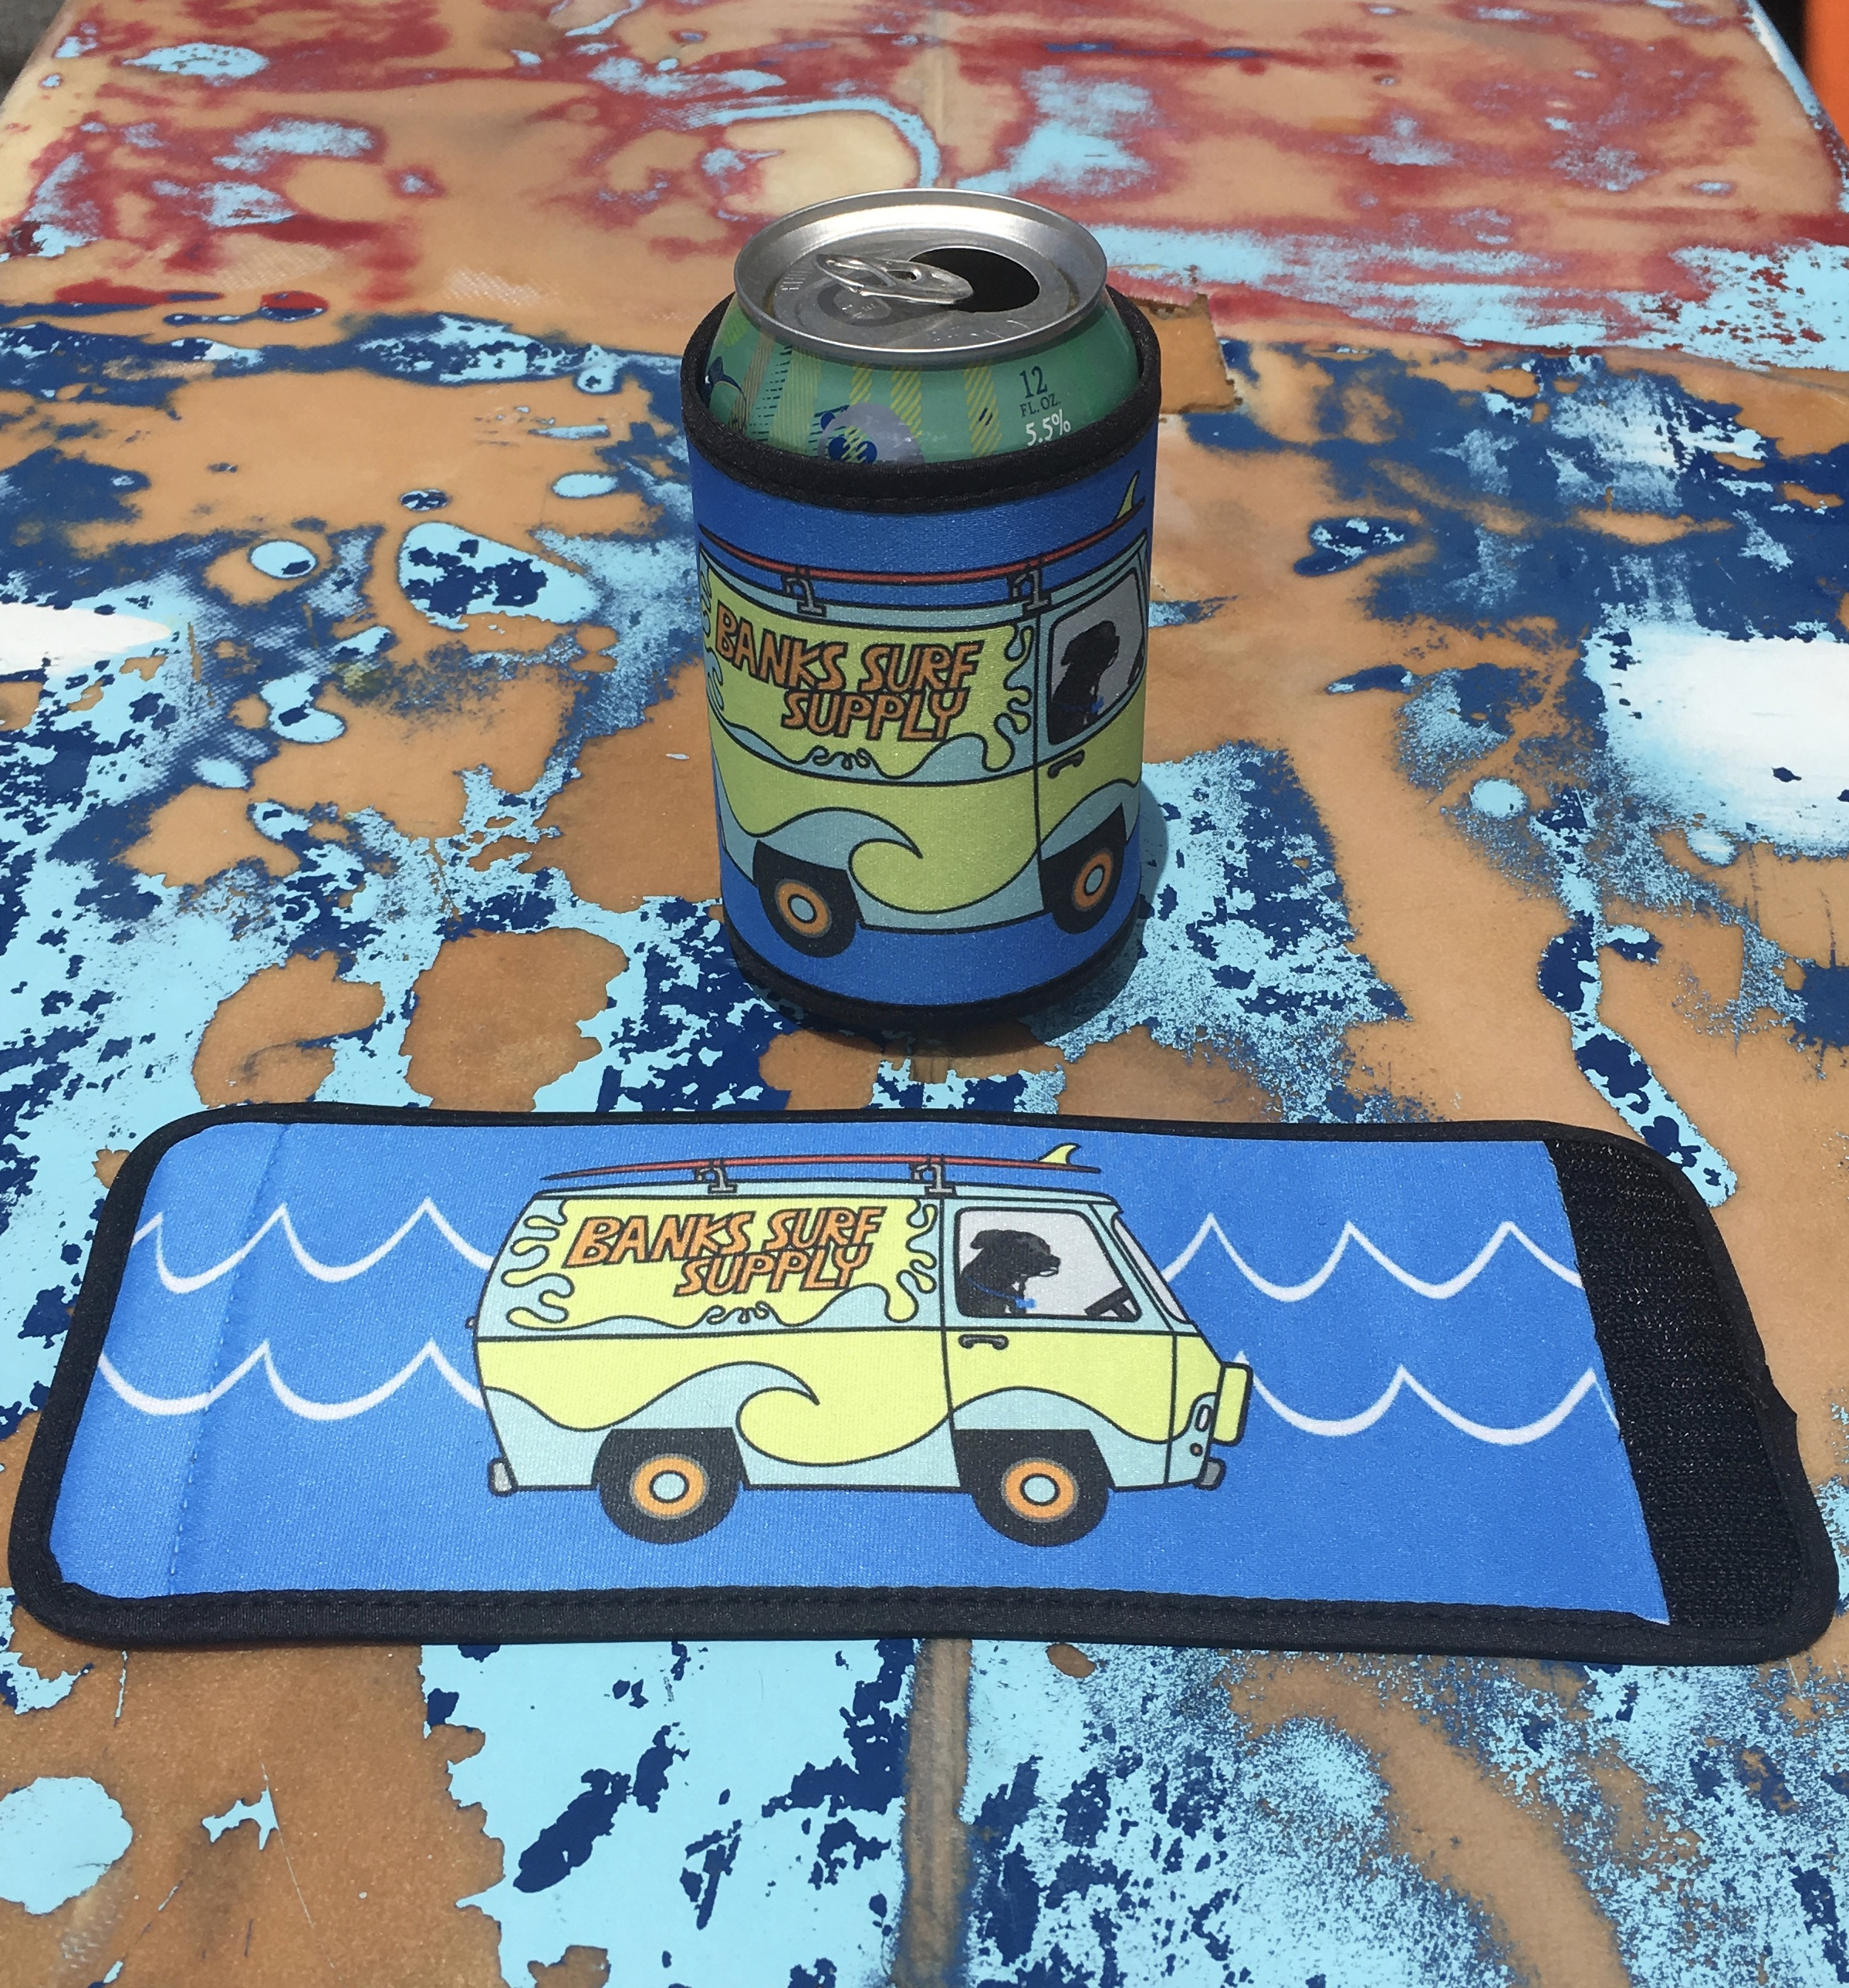 Banks Surf Supply Fred Shreds Wrap Koozie